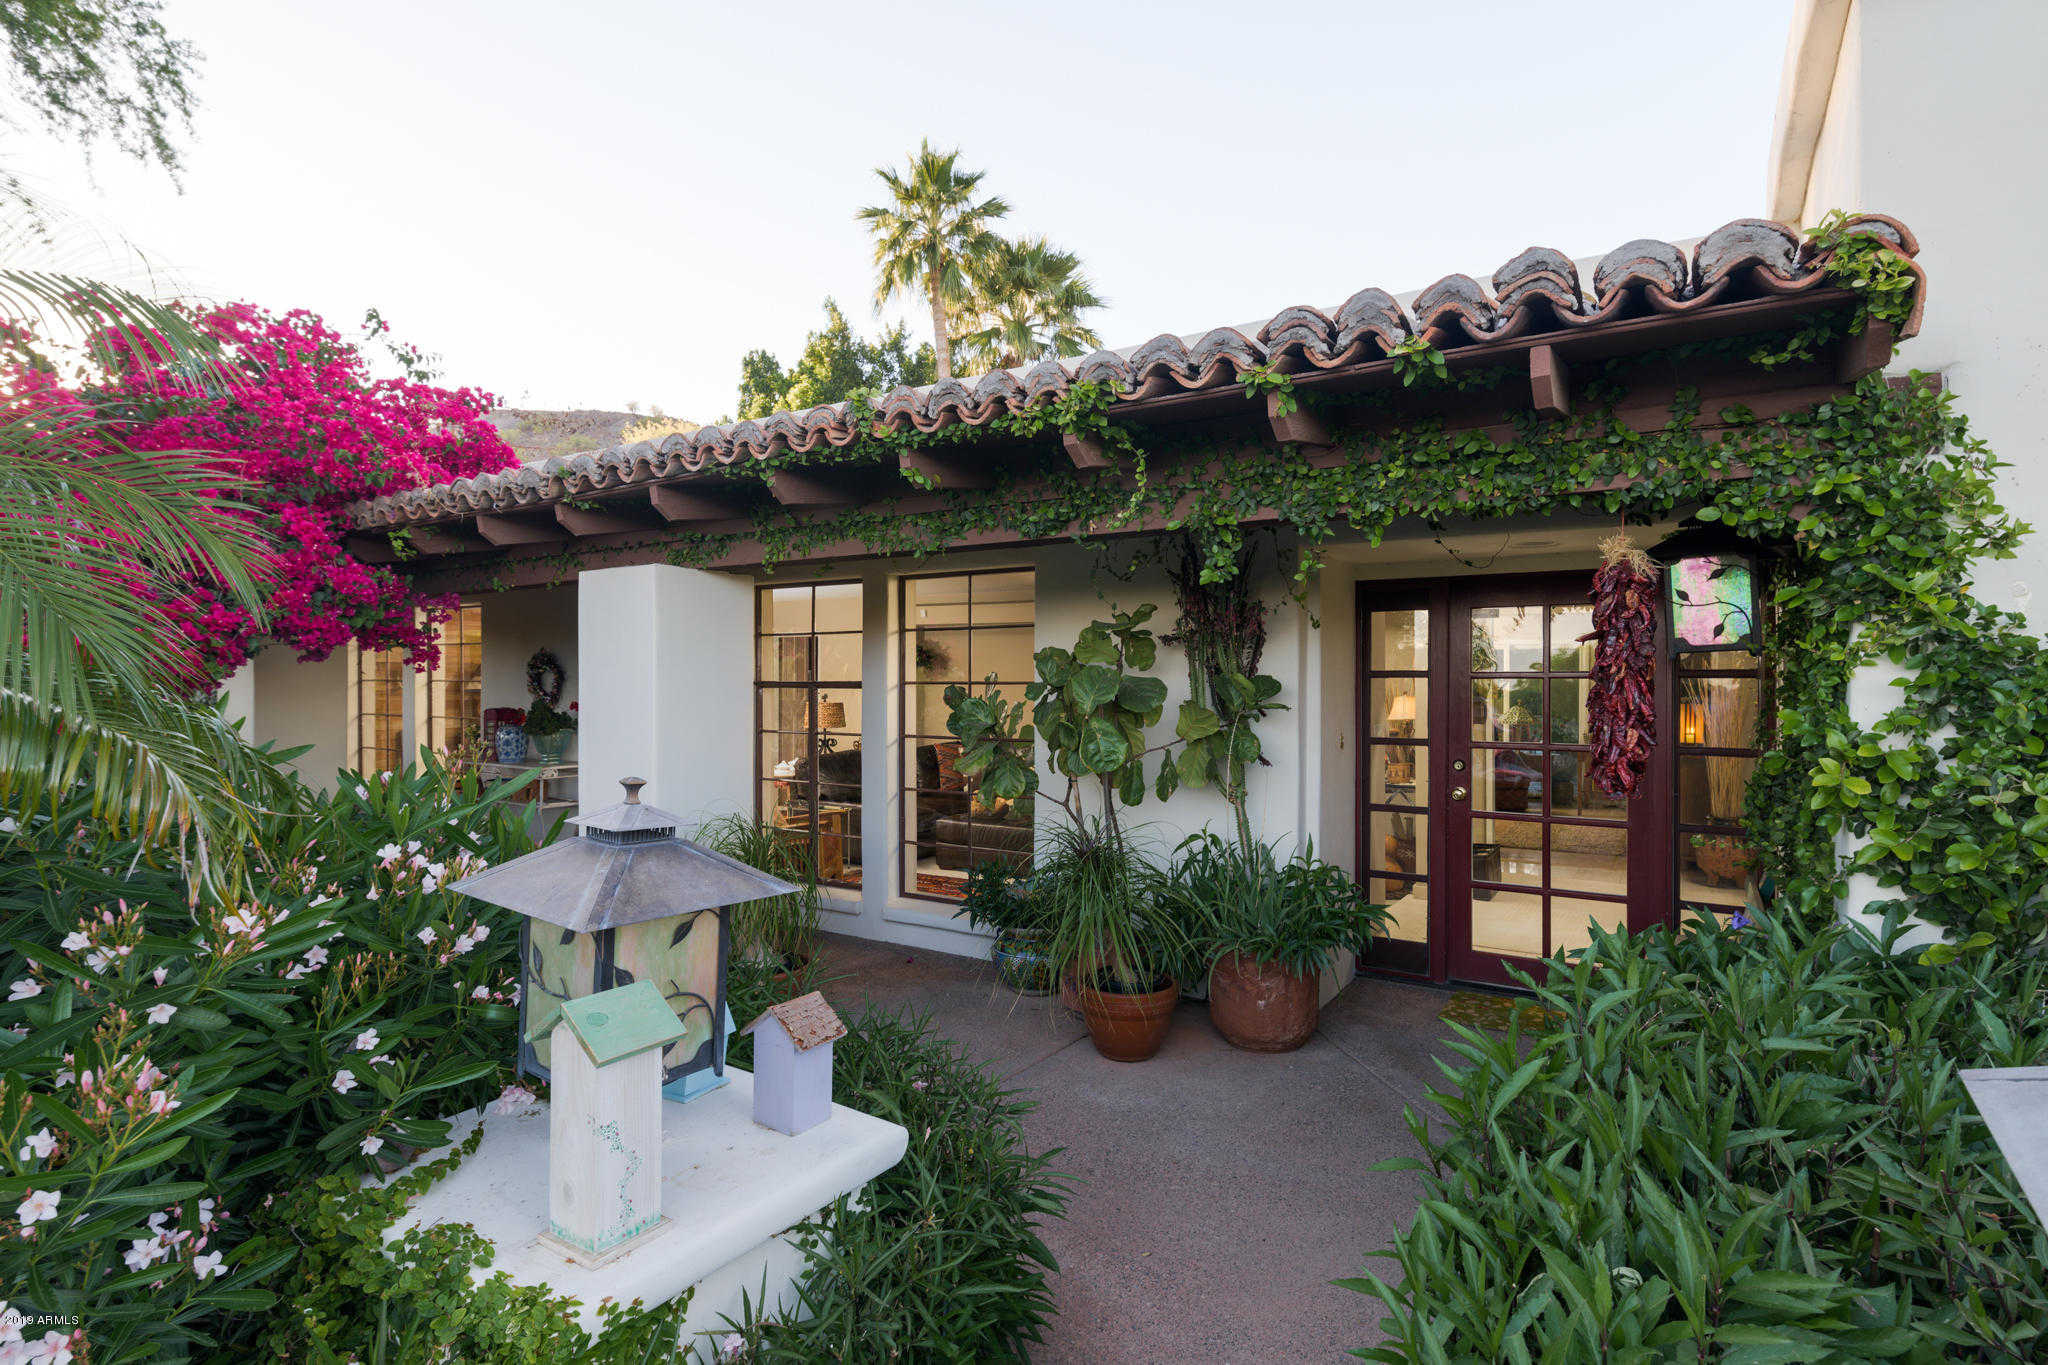 $1,500,000 - 6Br/4Ba - Home for Sale in Paradise Hills Estates, Paradise Valley